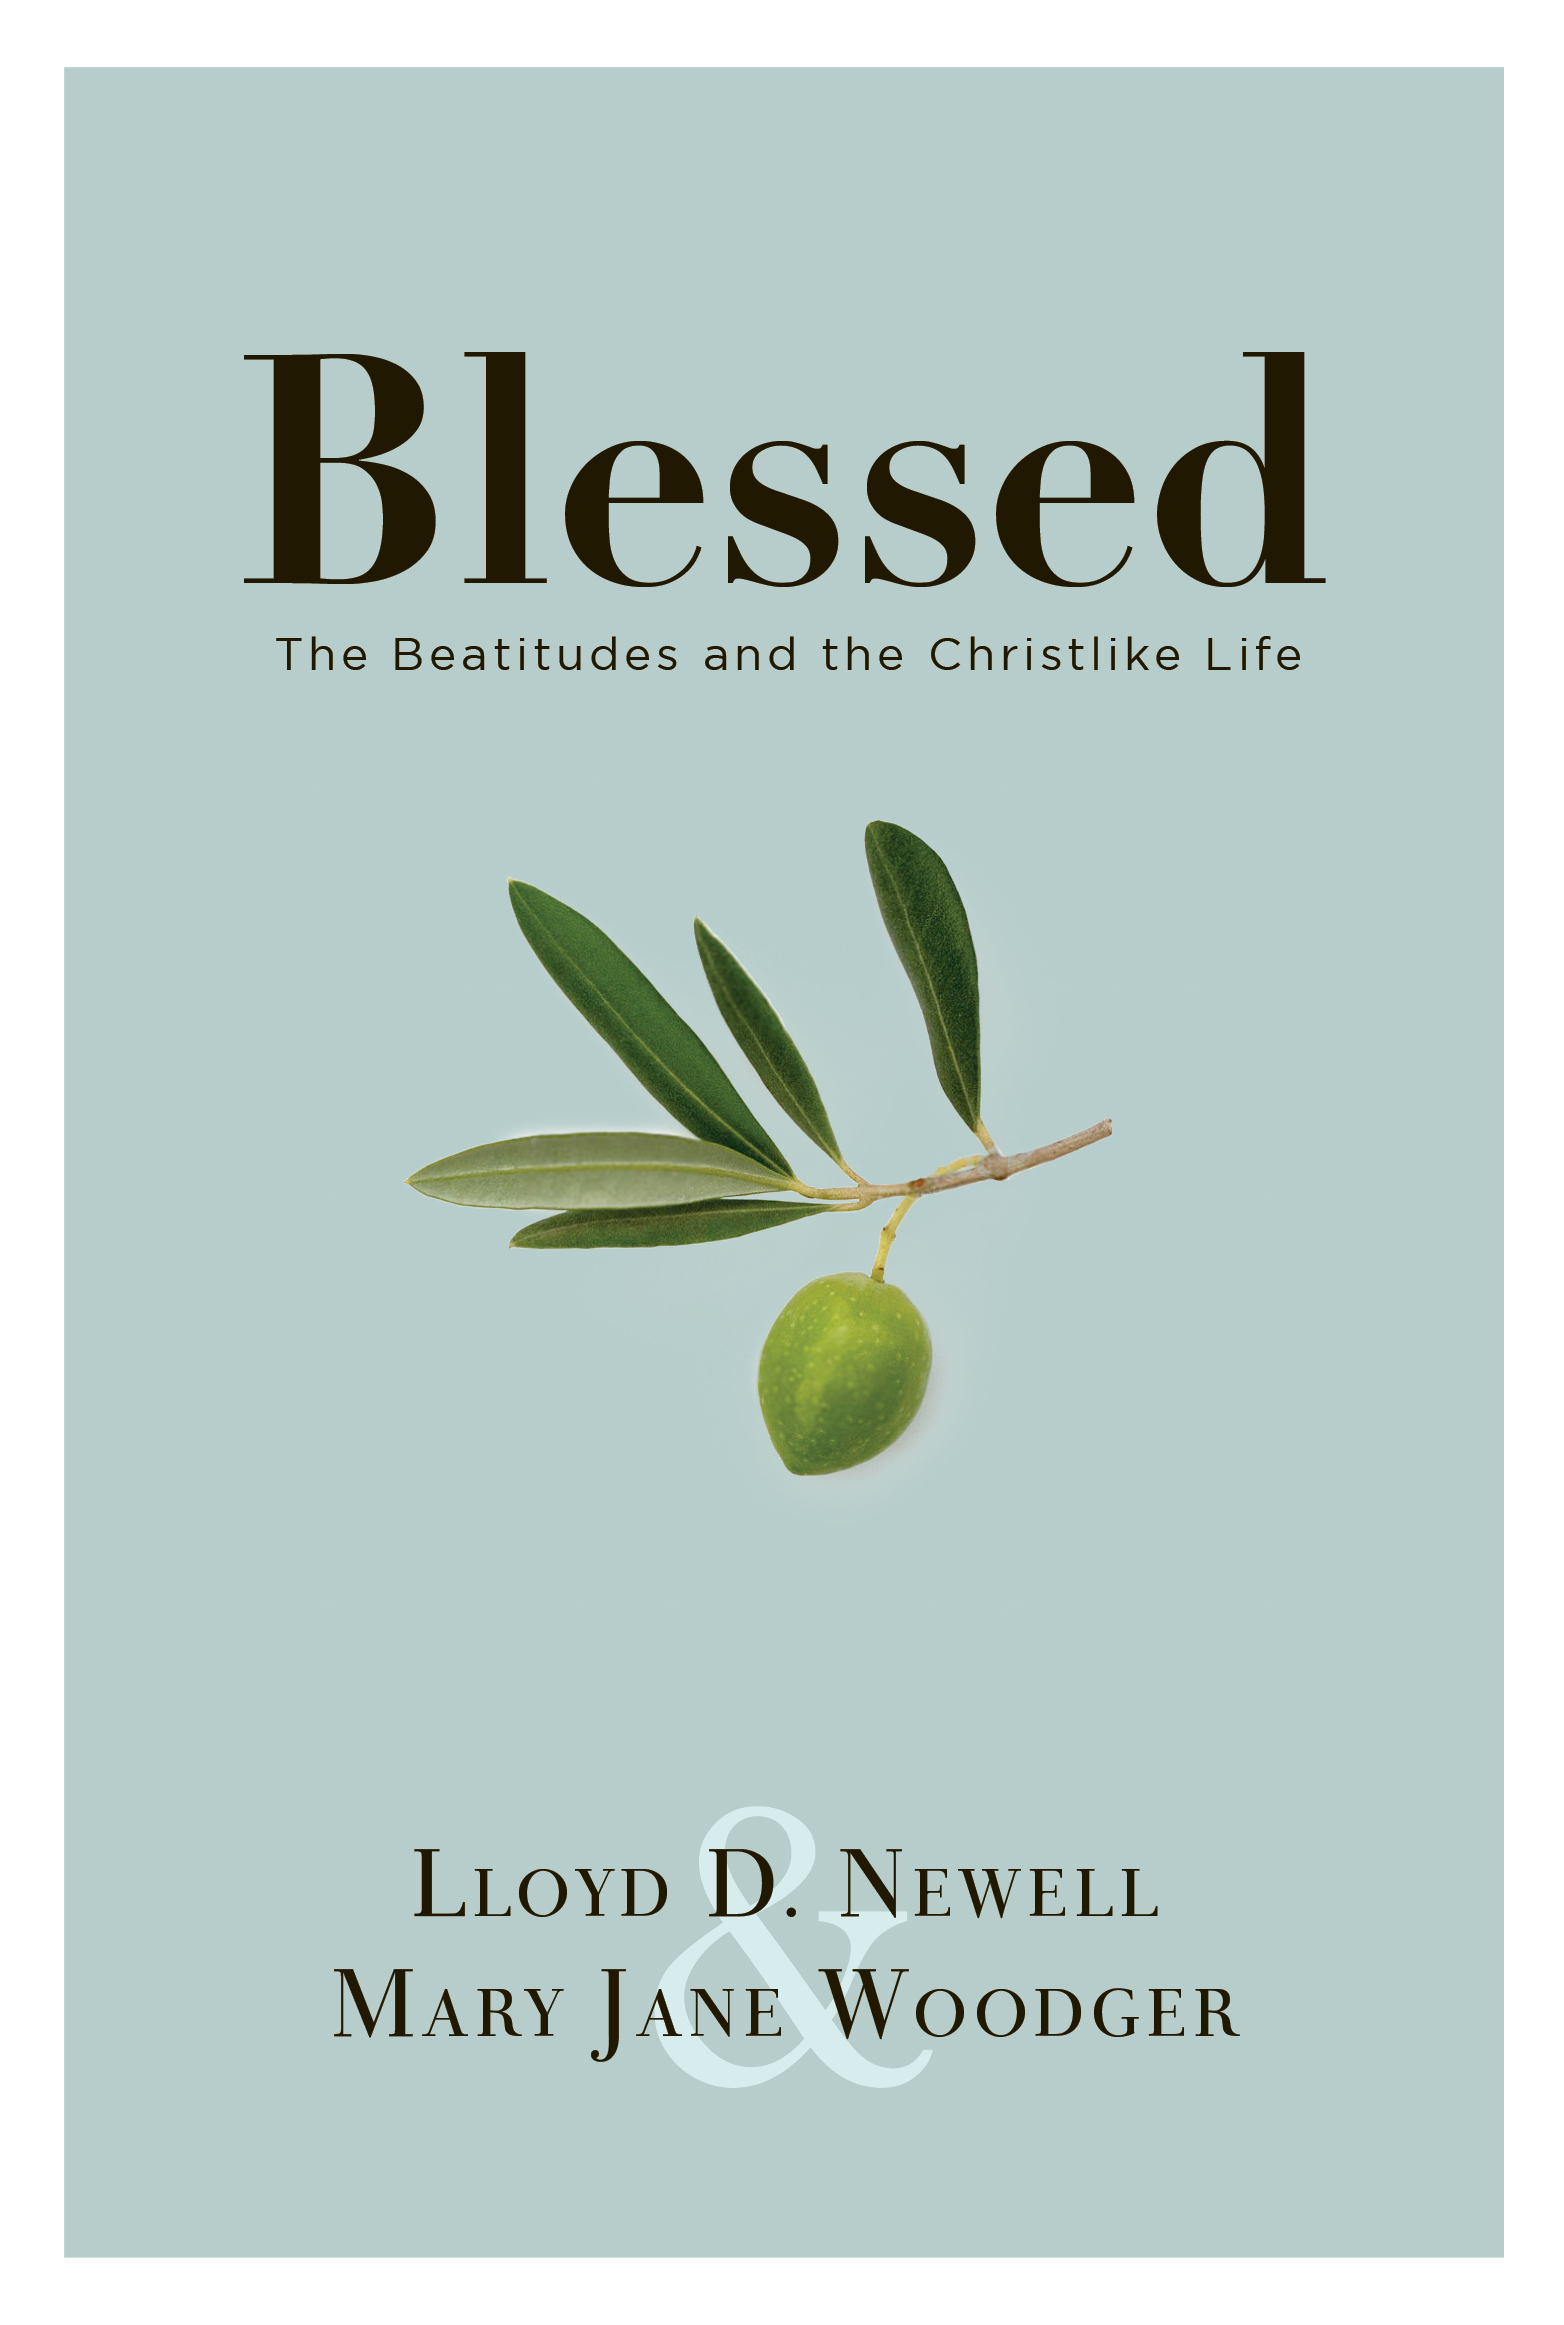 Blessed Blog Tour and Giveaway